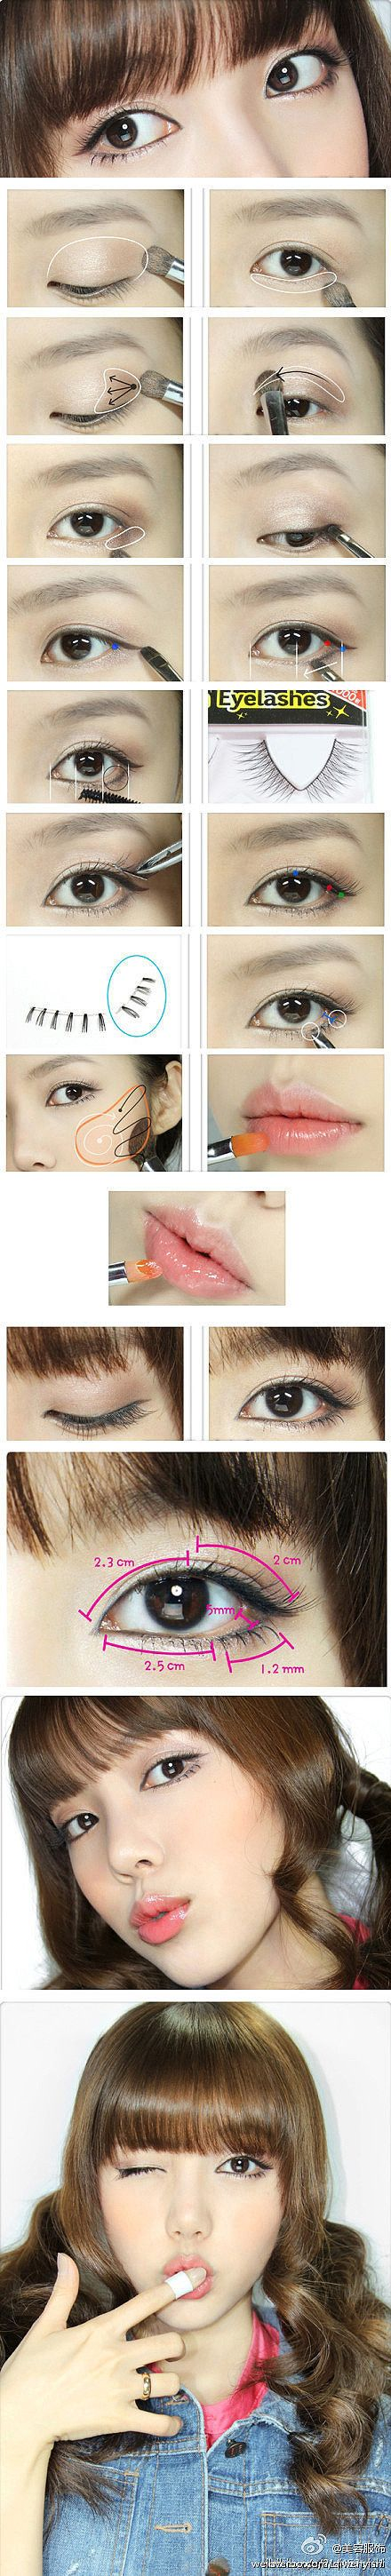 Ulzzang makeup tutorial                                                                                                                                                                                 More